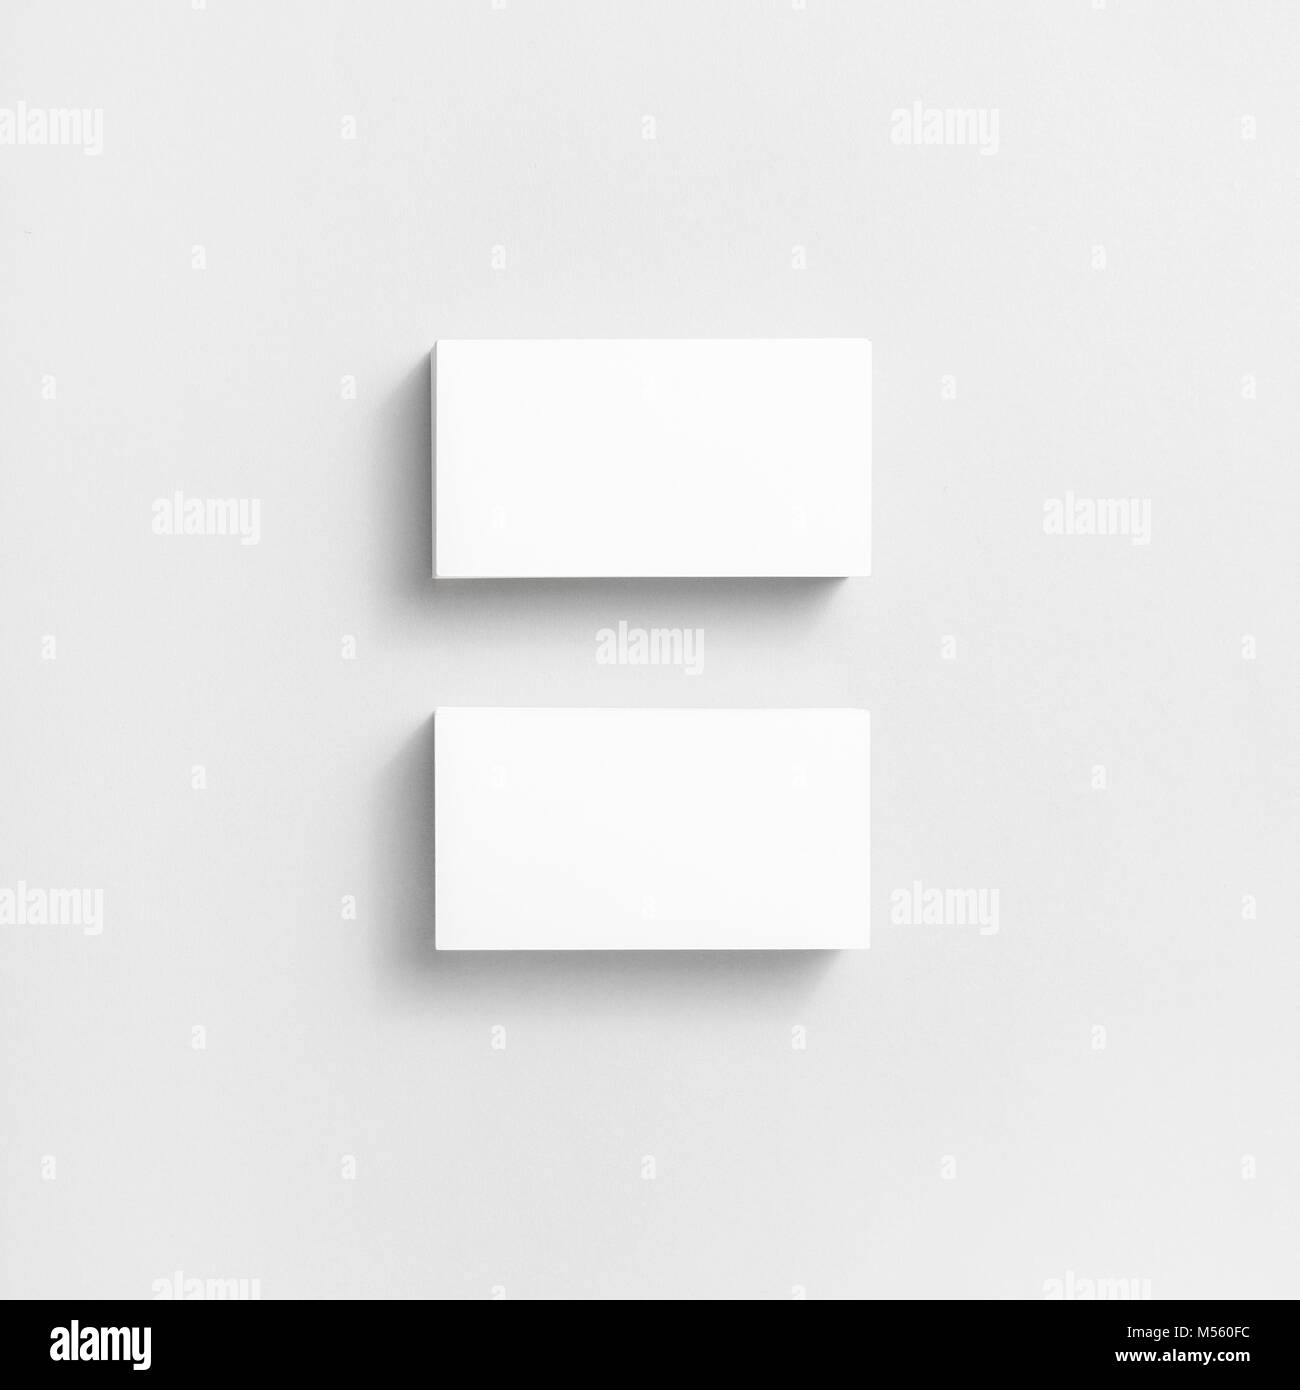 Blank business cards Stock Photo: 175309104 - Alamy